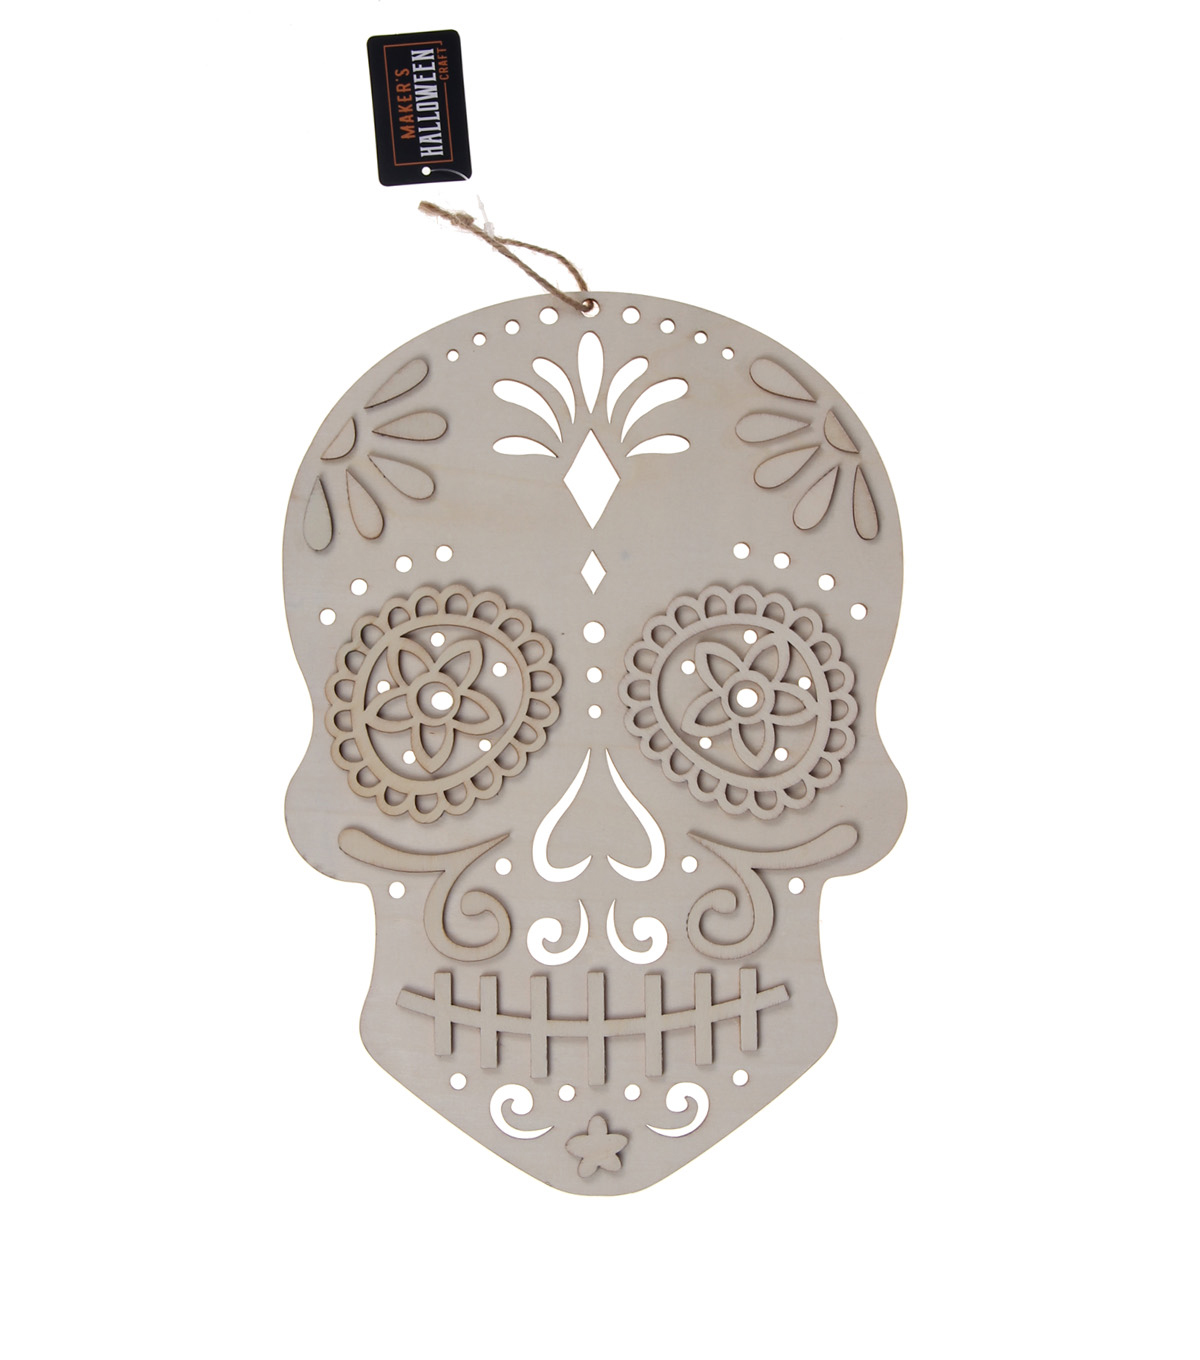 Makers Halloween Craft 8x032 Wooden Sugar Skull Day Of The Dead